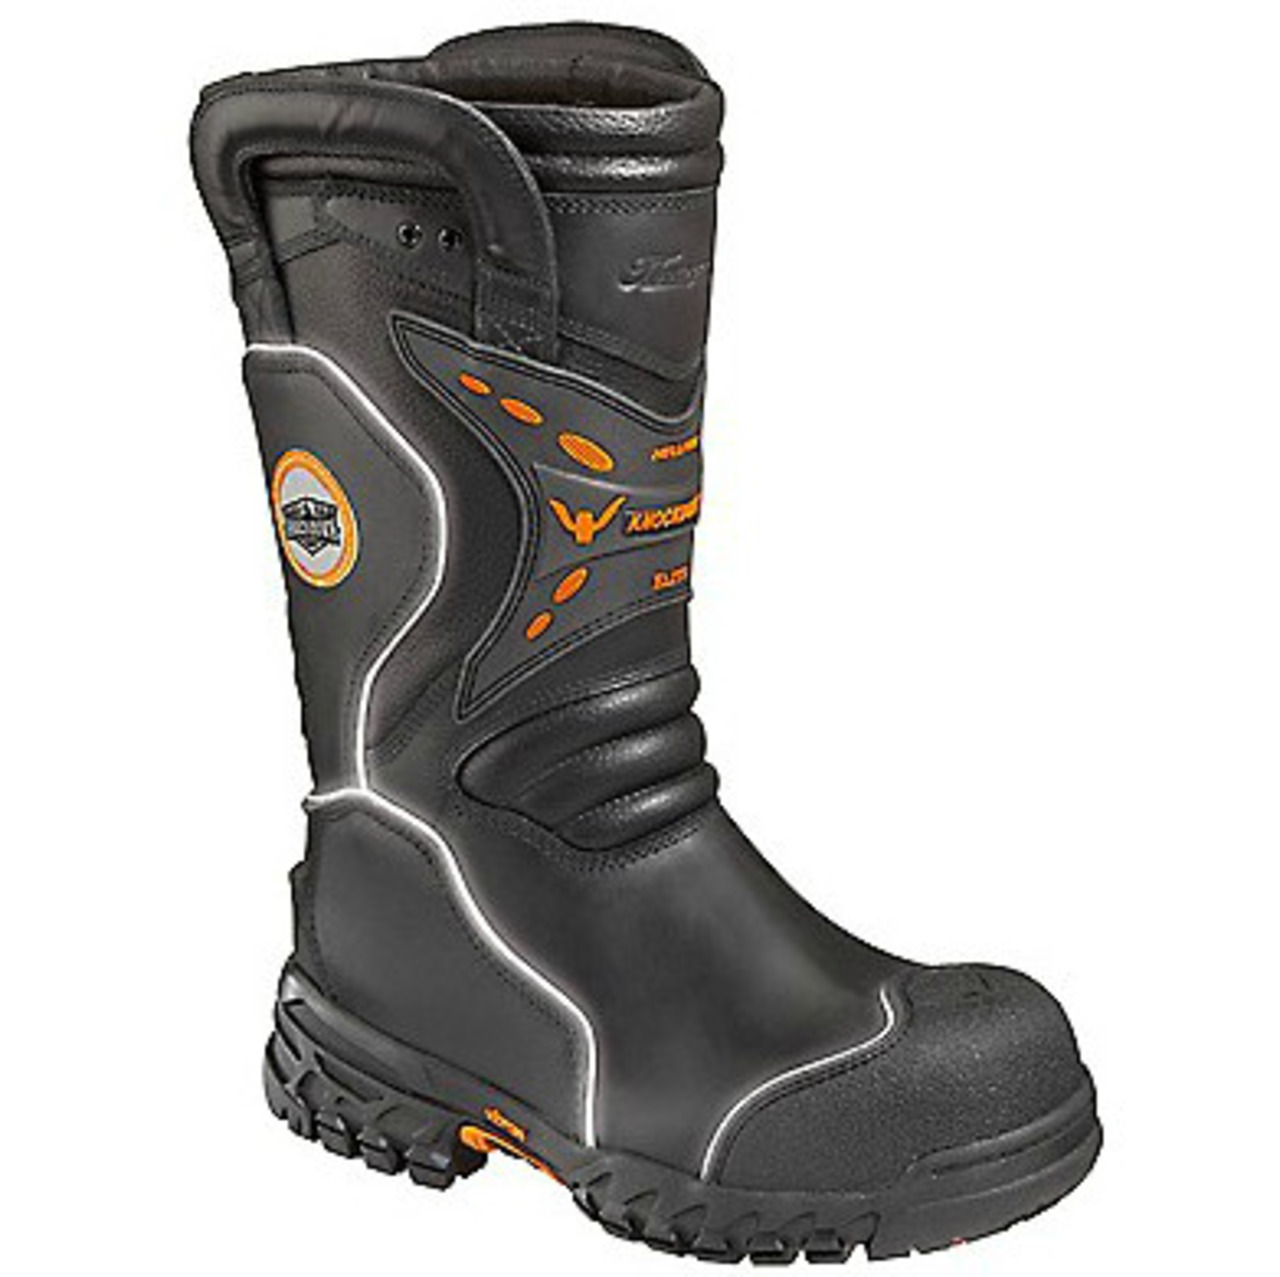 55504420a4f Thorogood's New Structural Boot Available at TheFireStore.com